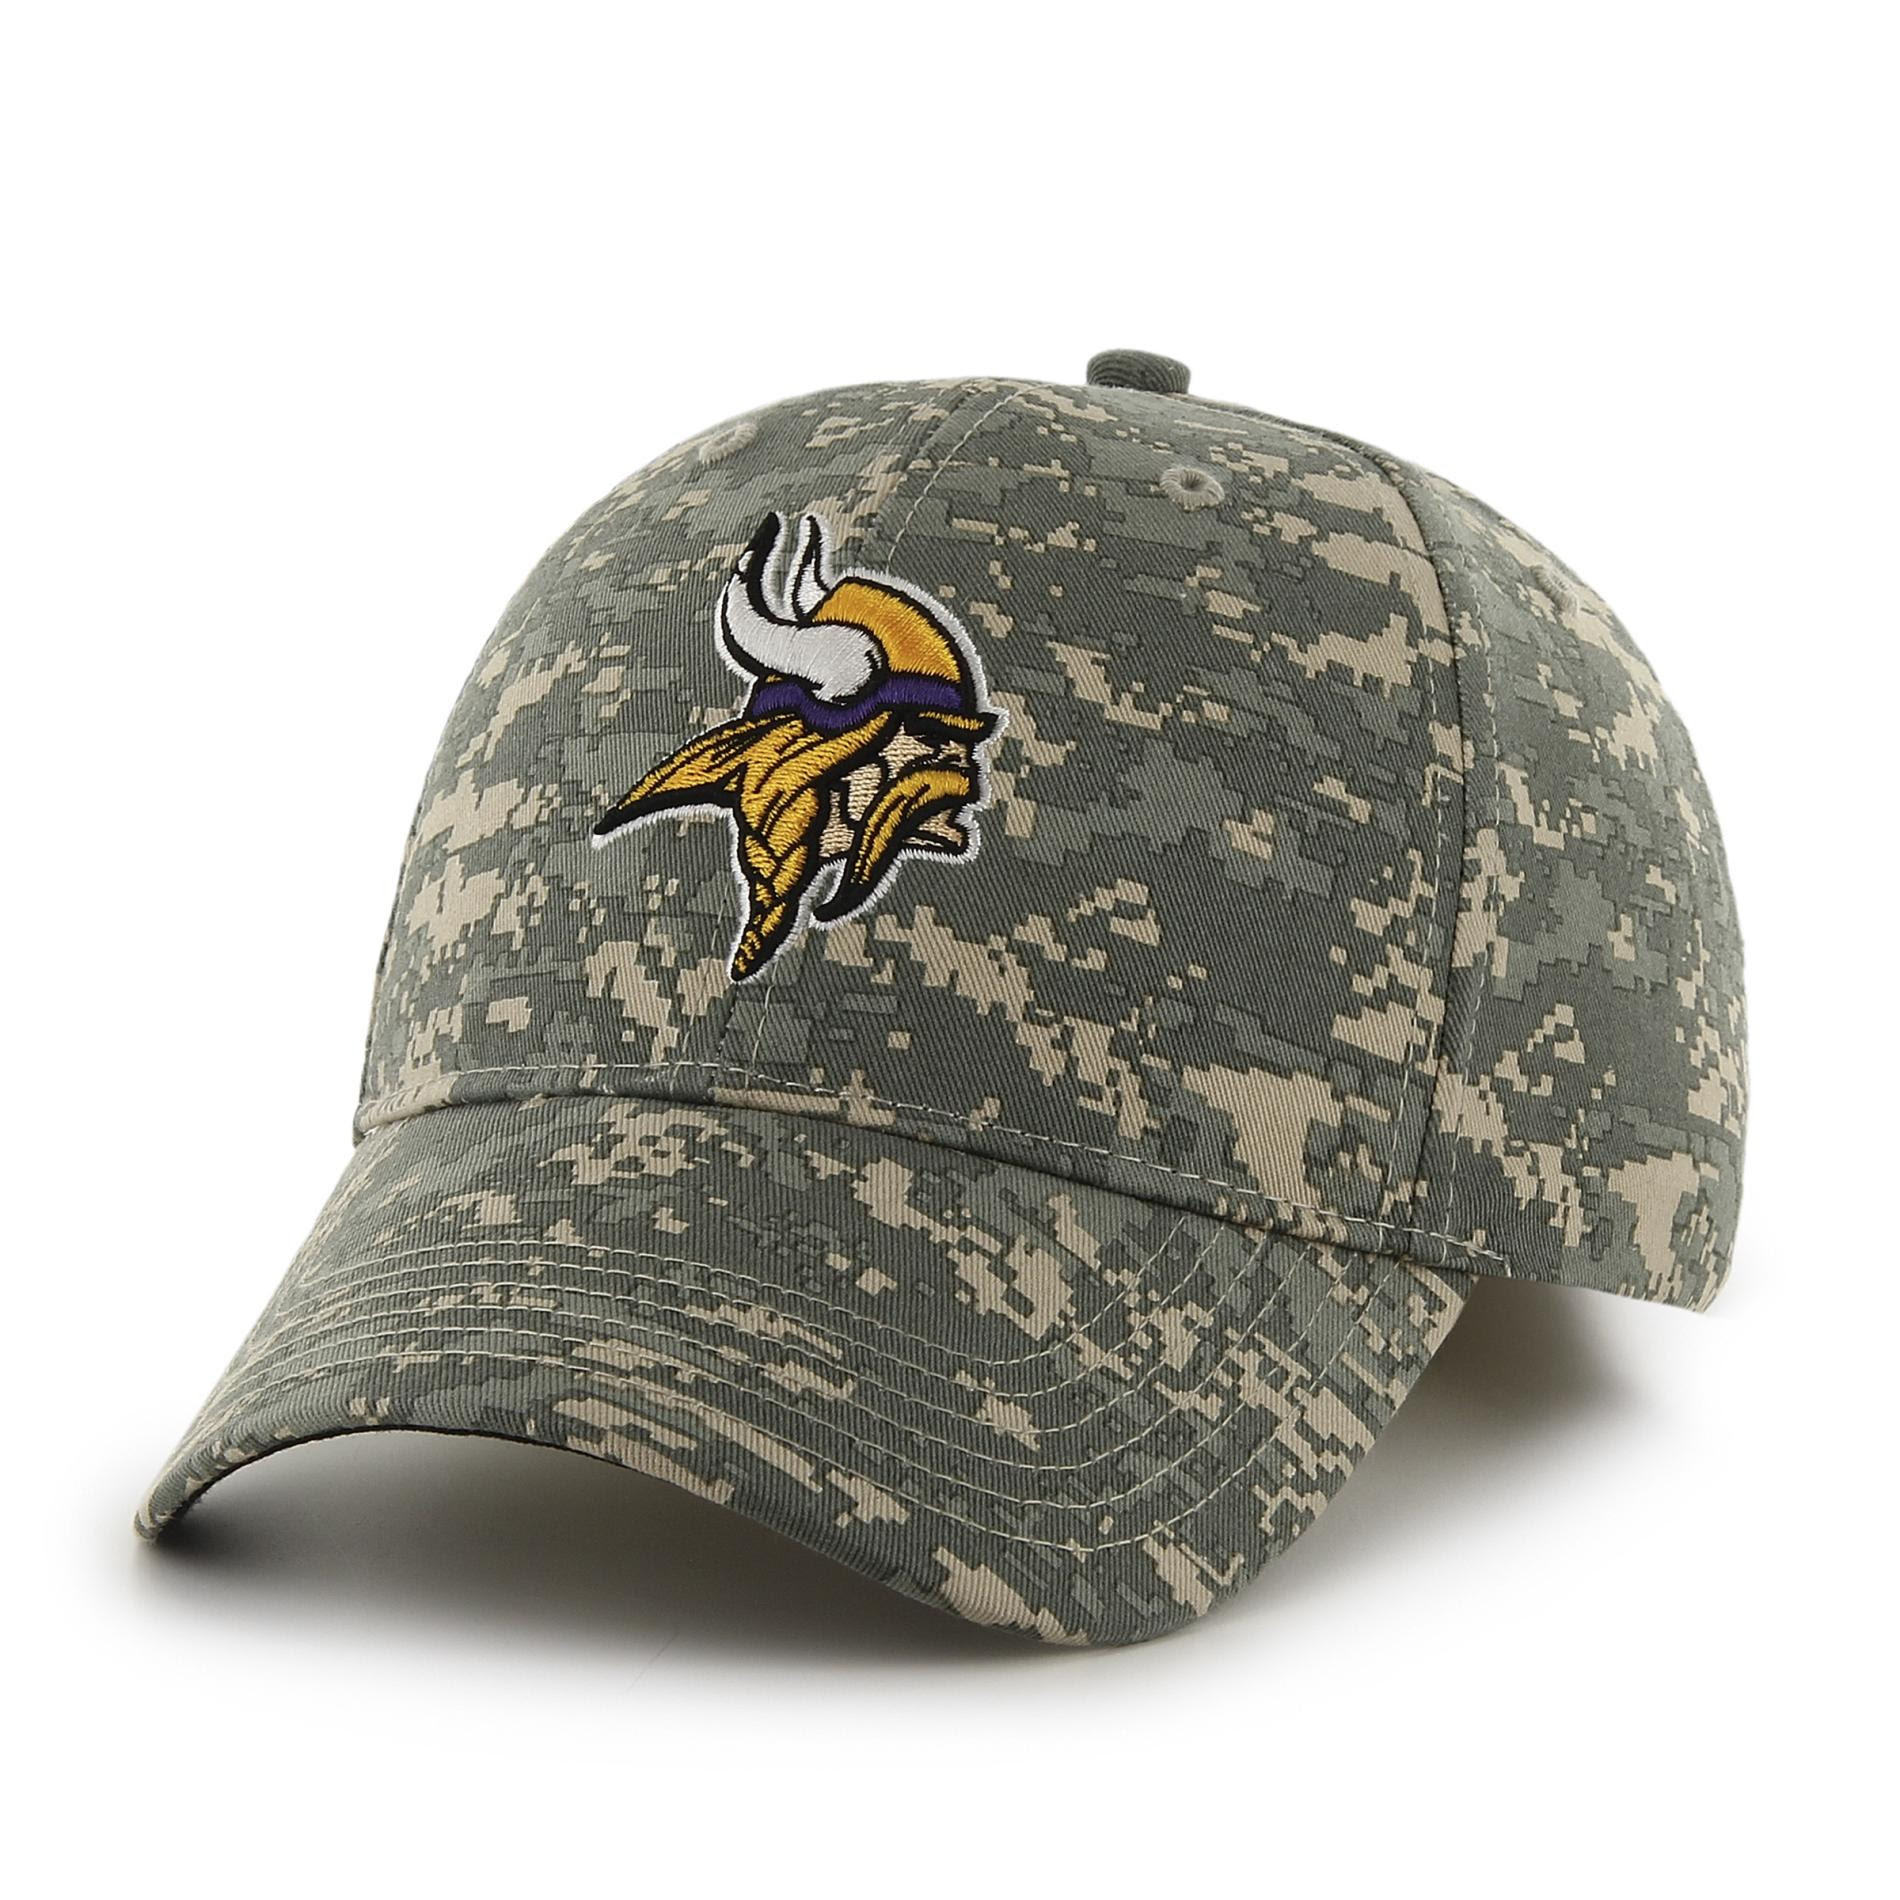 NFL Mens Camo Baseball Hat  Minnesota Vikings